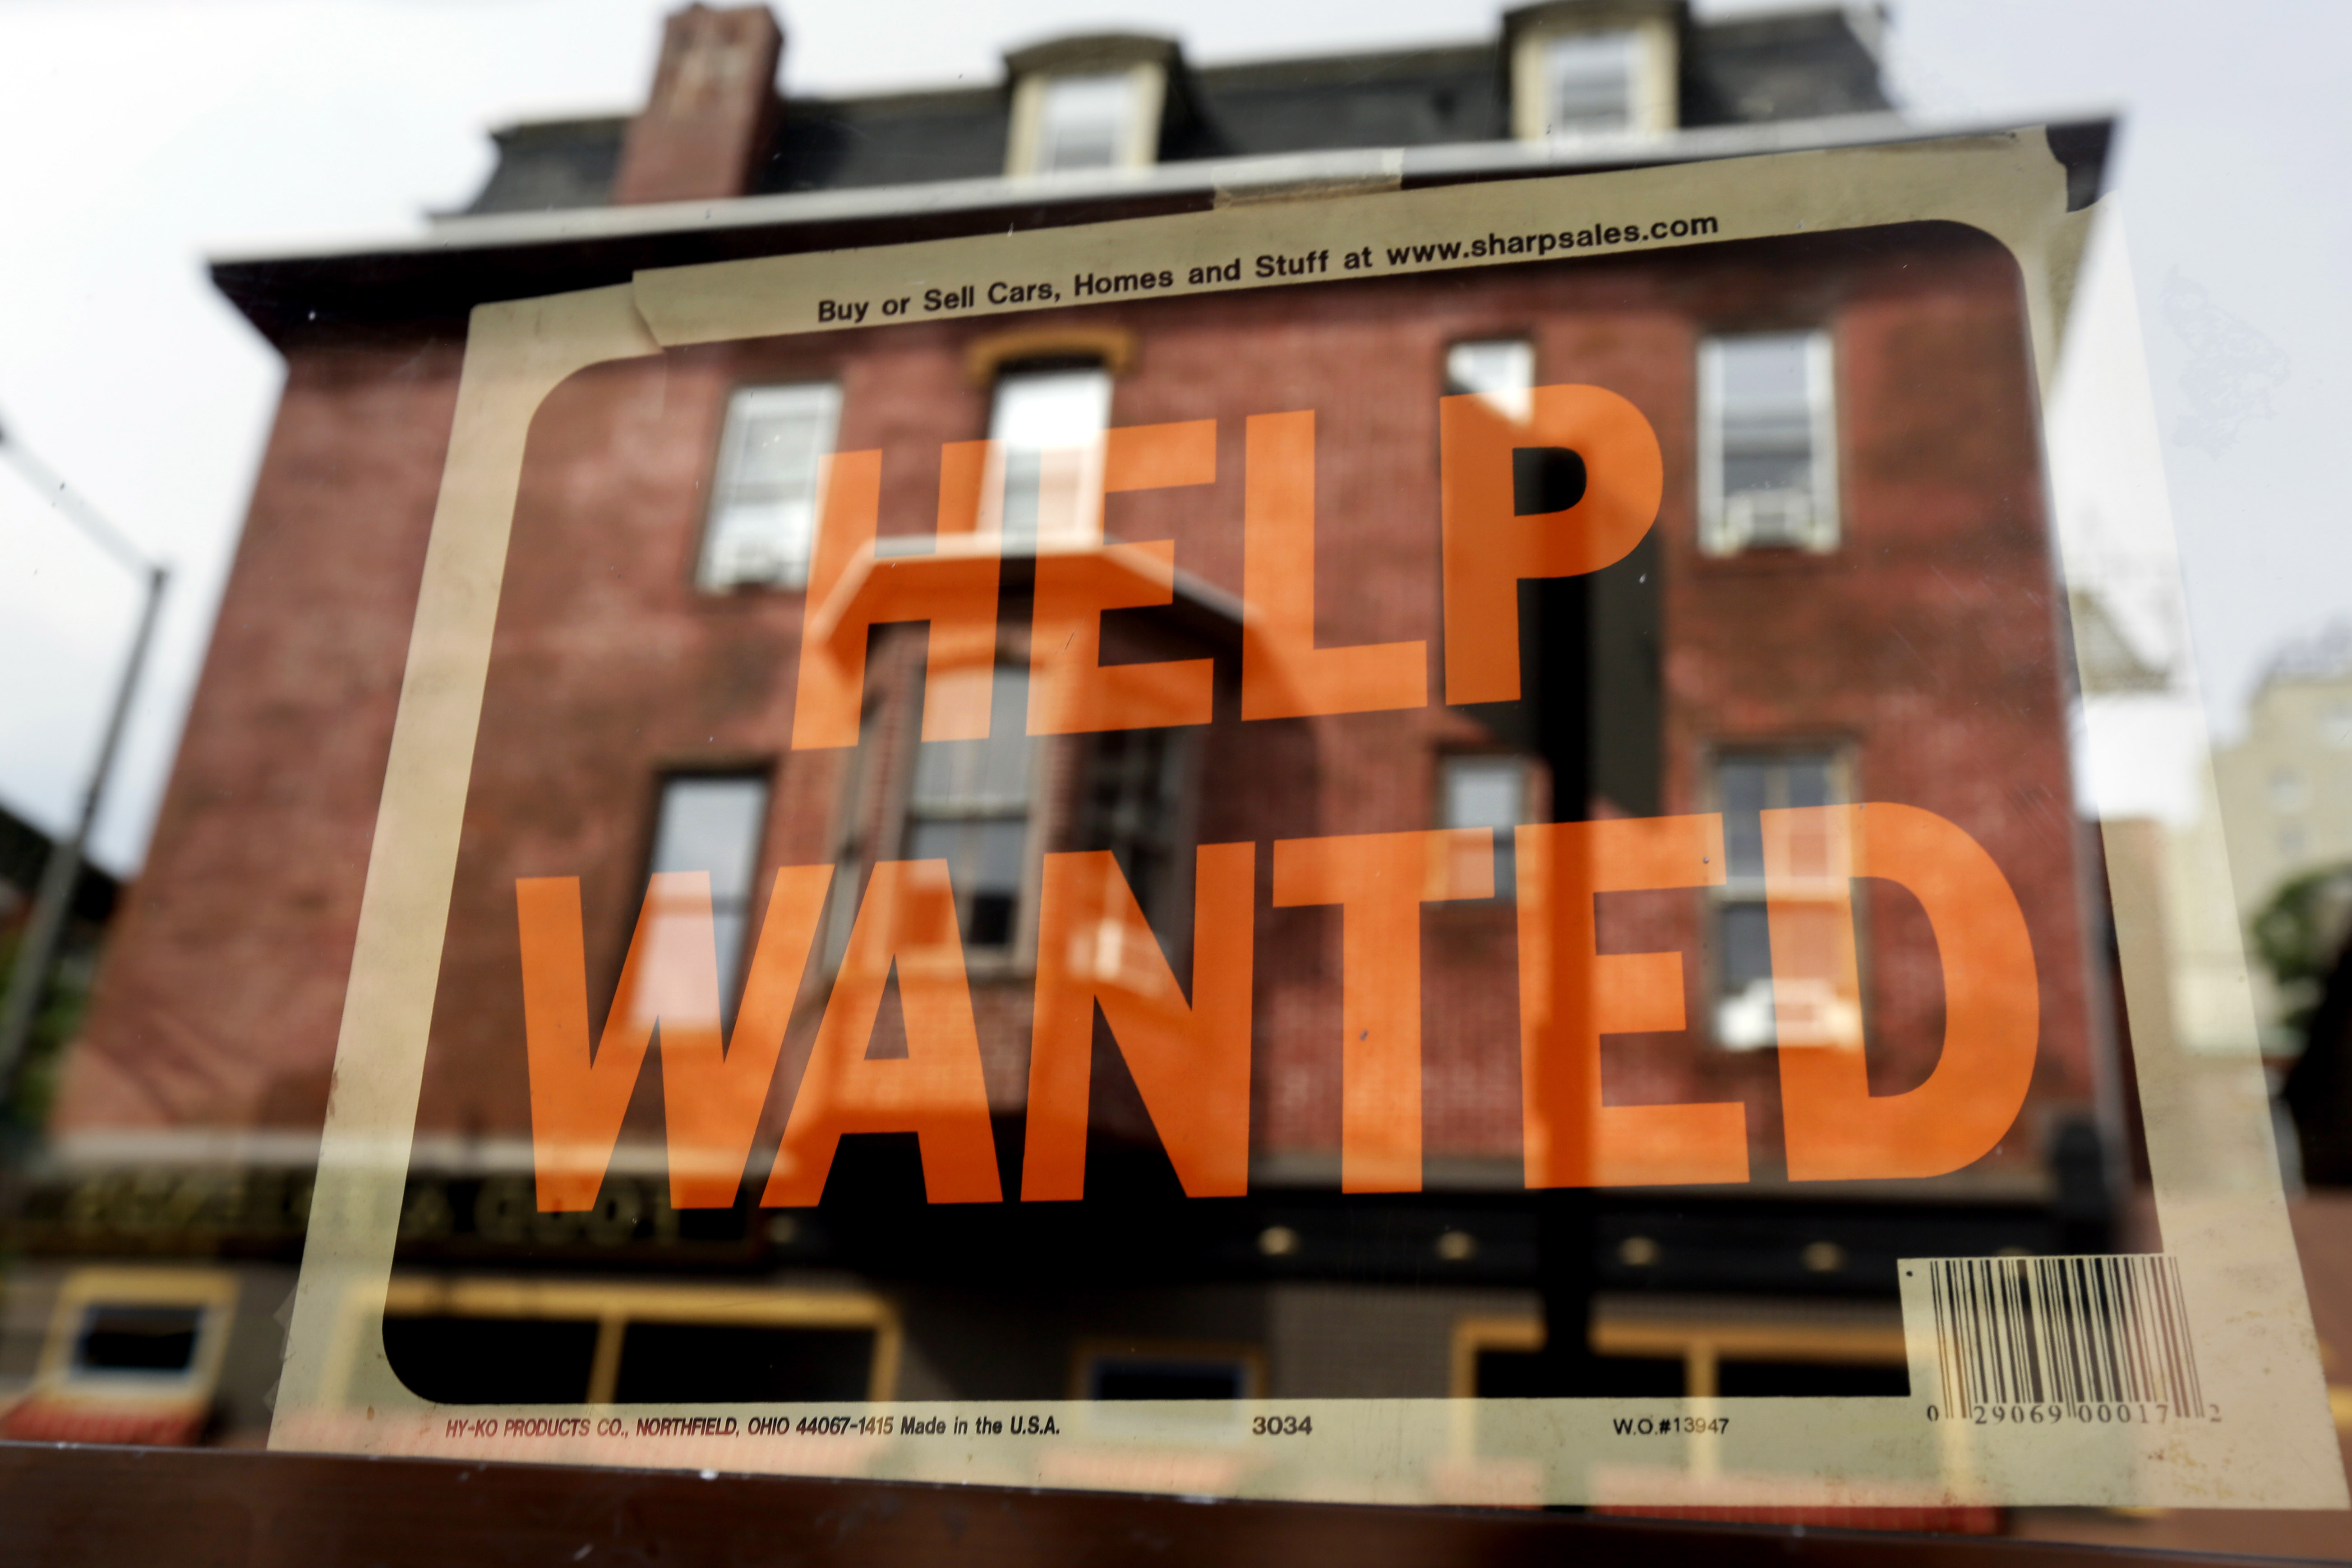 Friday's Jobs Report Could Ease US Recession Fears. Or Not